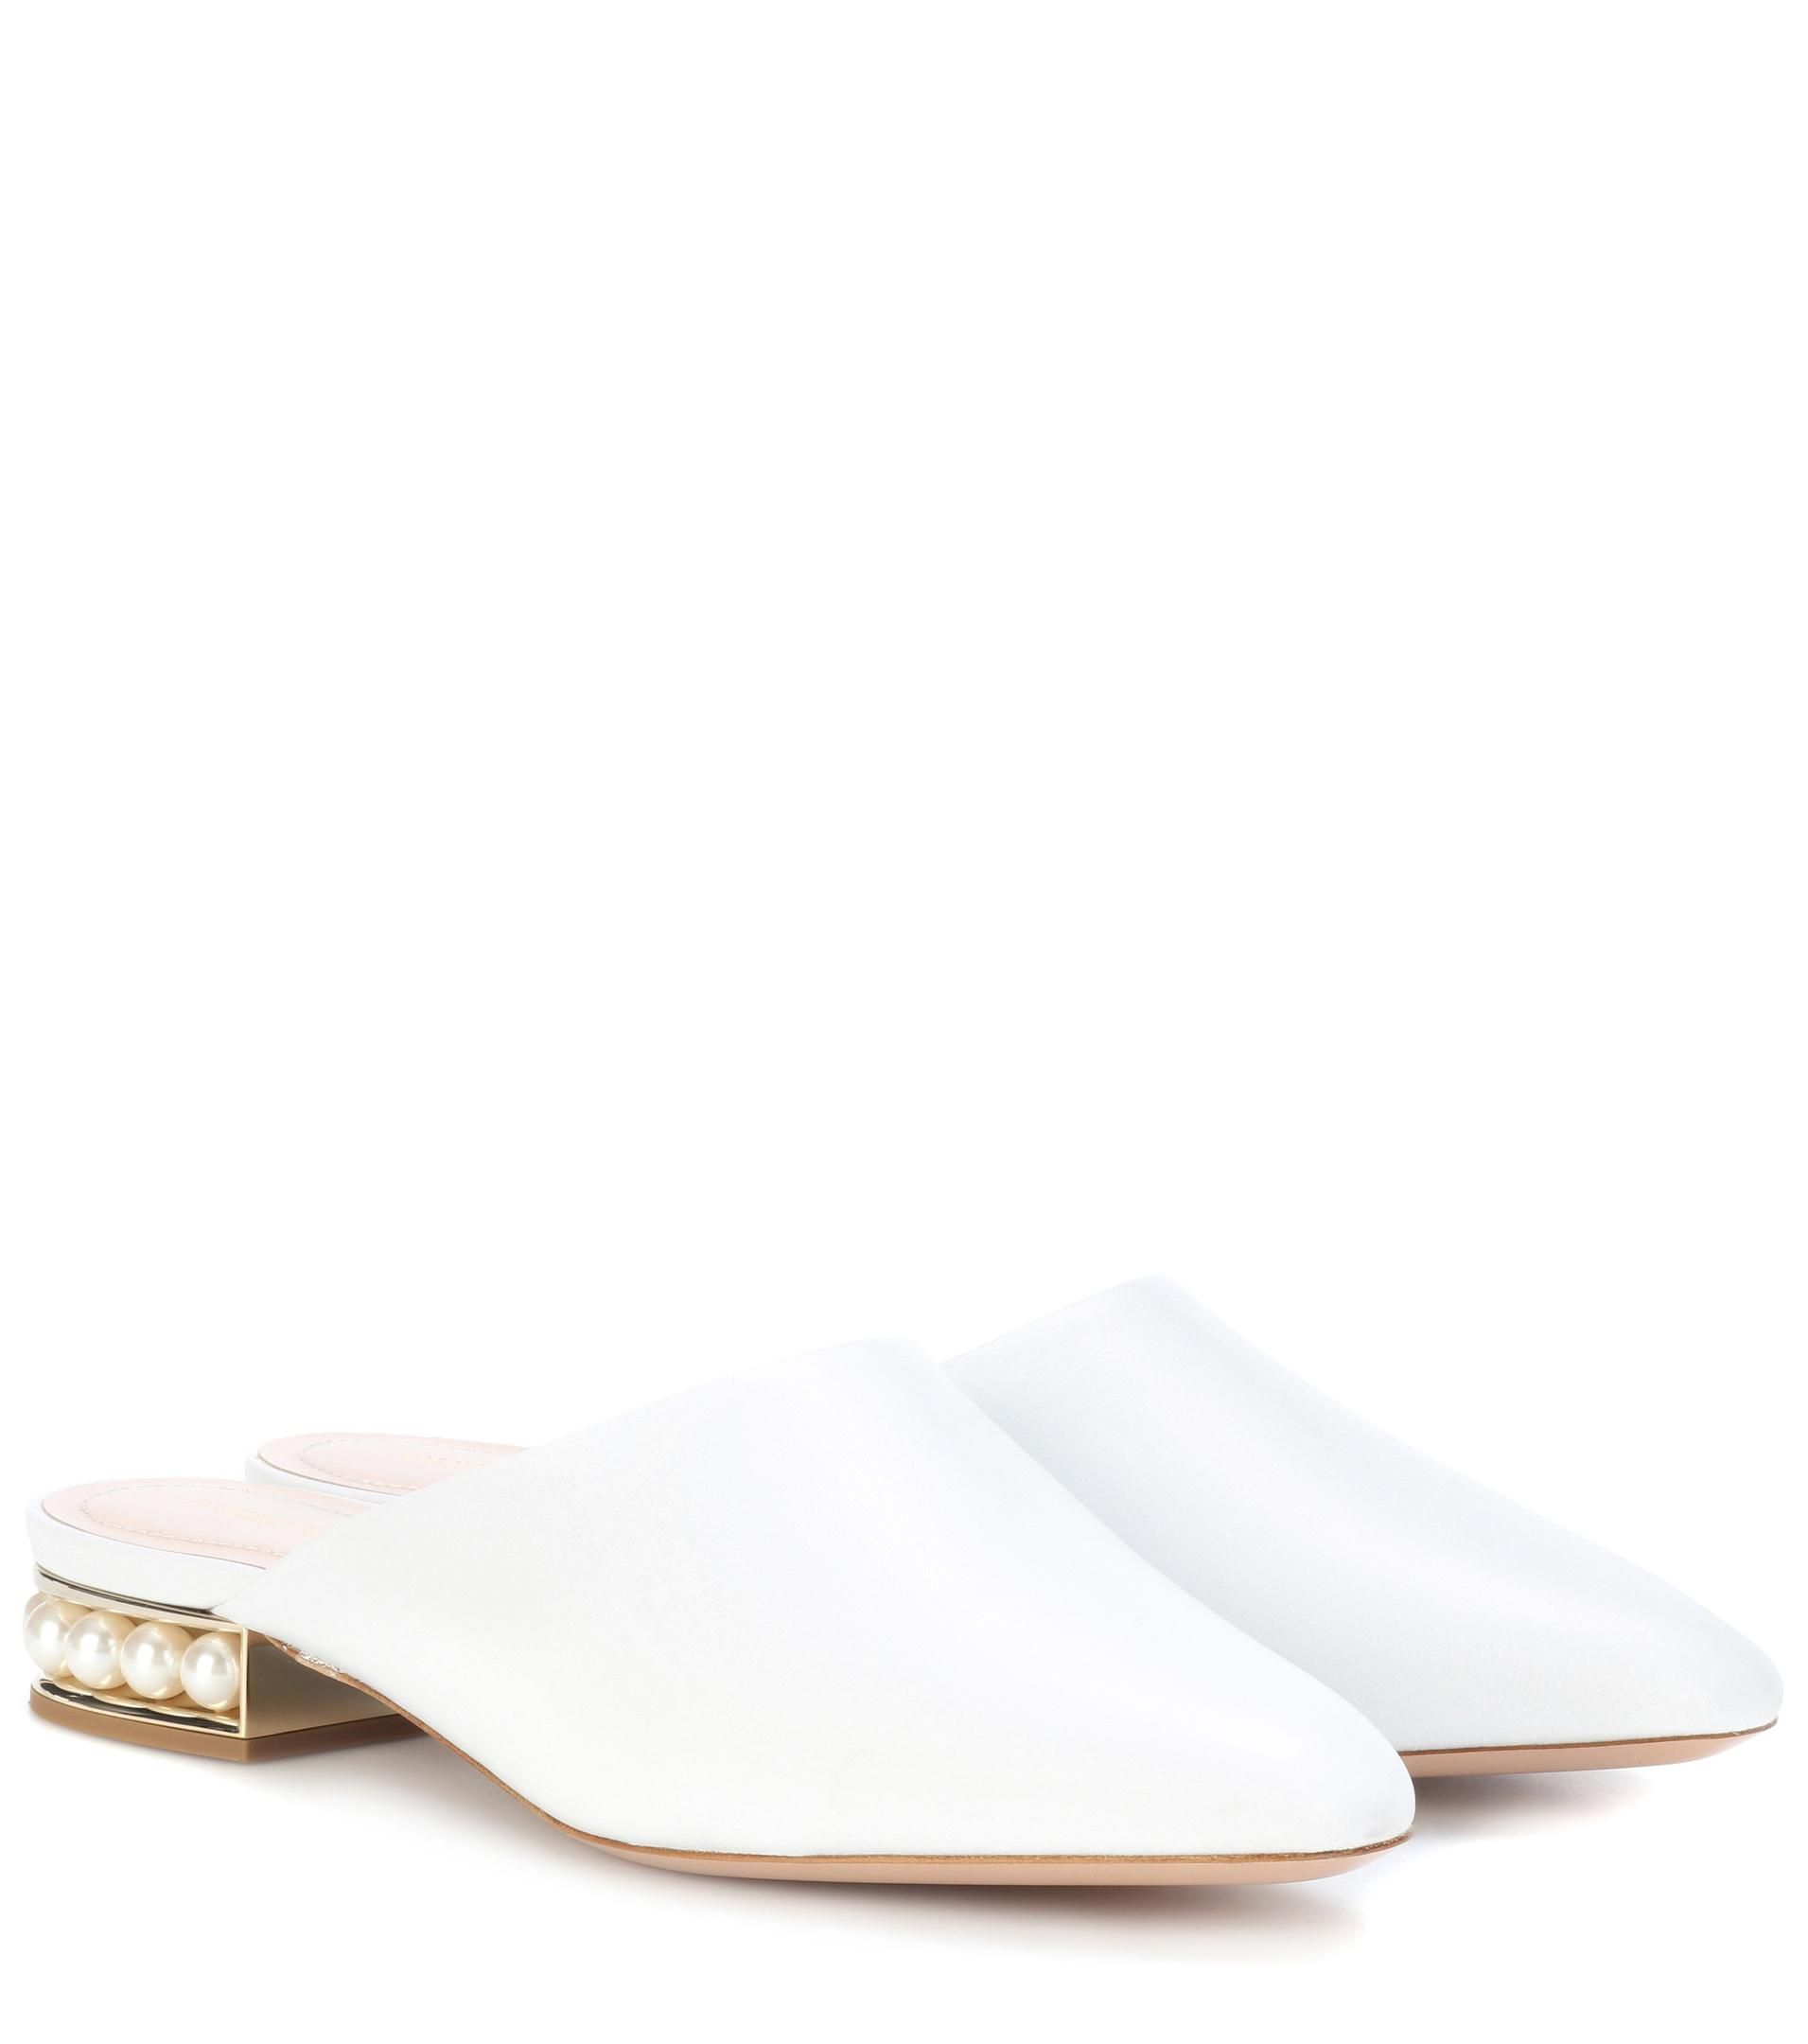 outlet online shop Nicholas Kirkwood Casati embellished leather mules cheap lowest price browse for sale T2NMk0l